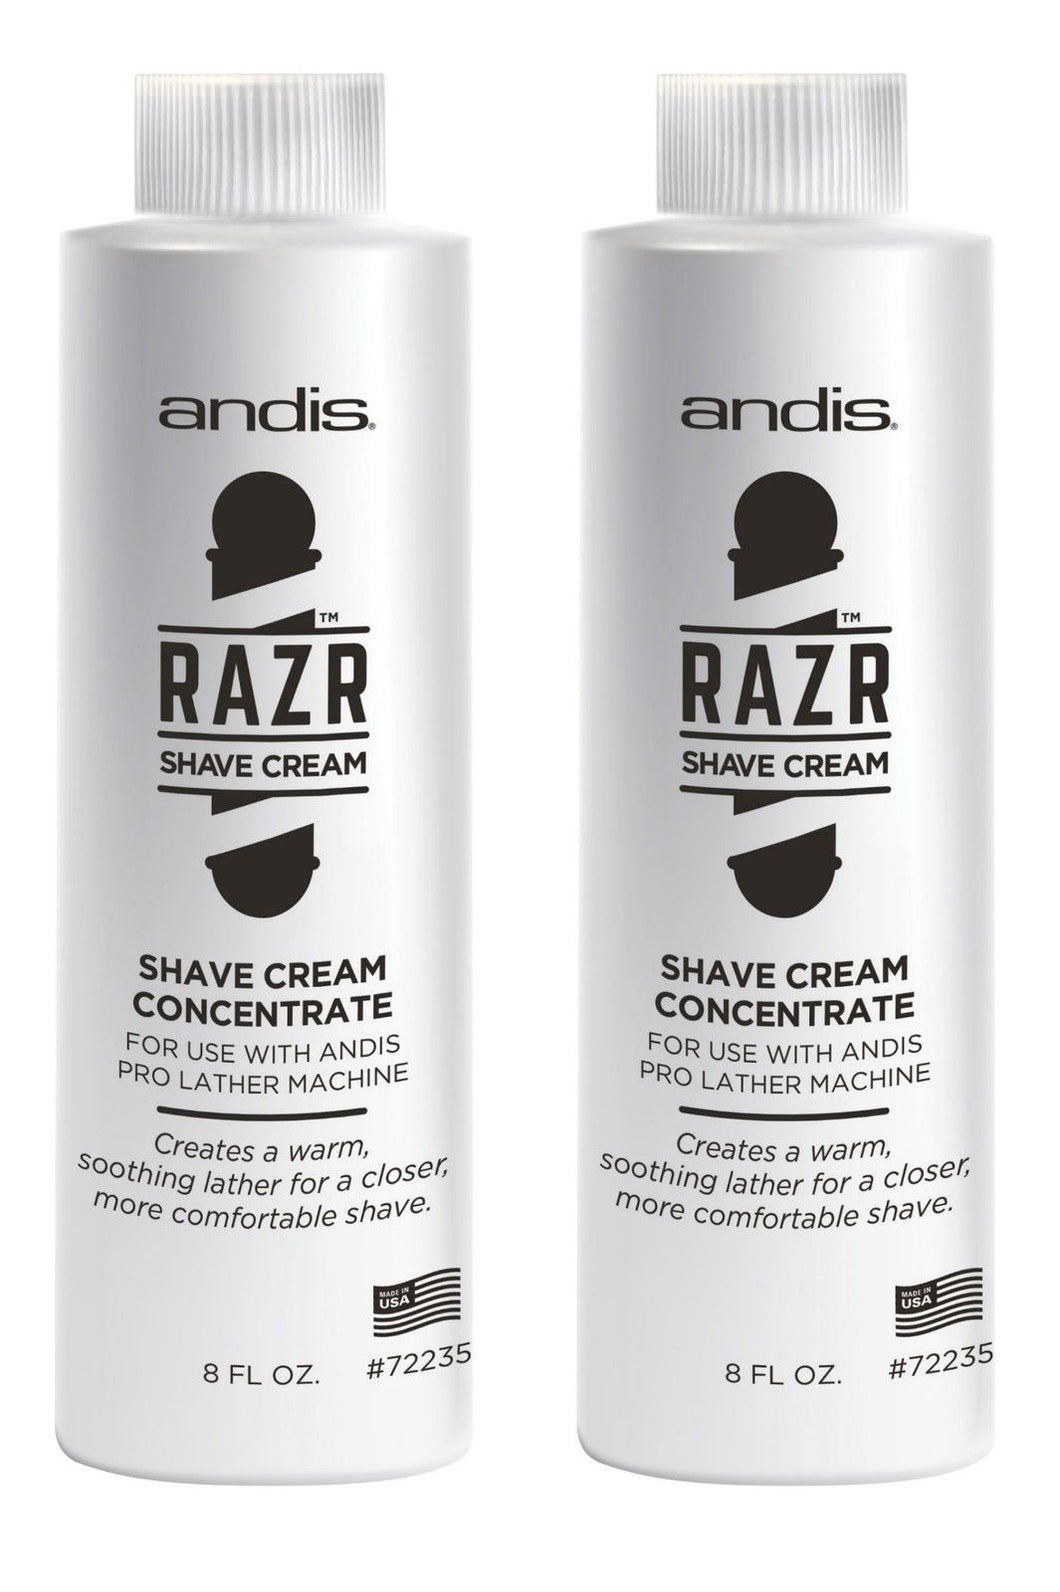 Andis RAZR Shave Cream Concentrate TWO #72235 for Hot Lather Machine Latherizer